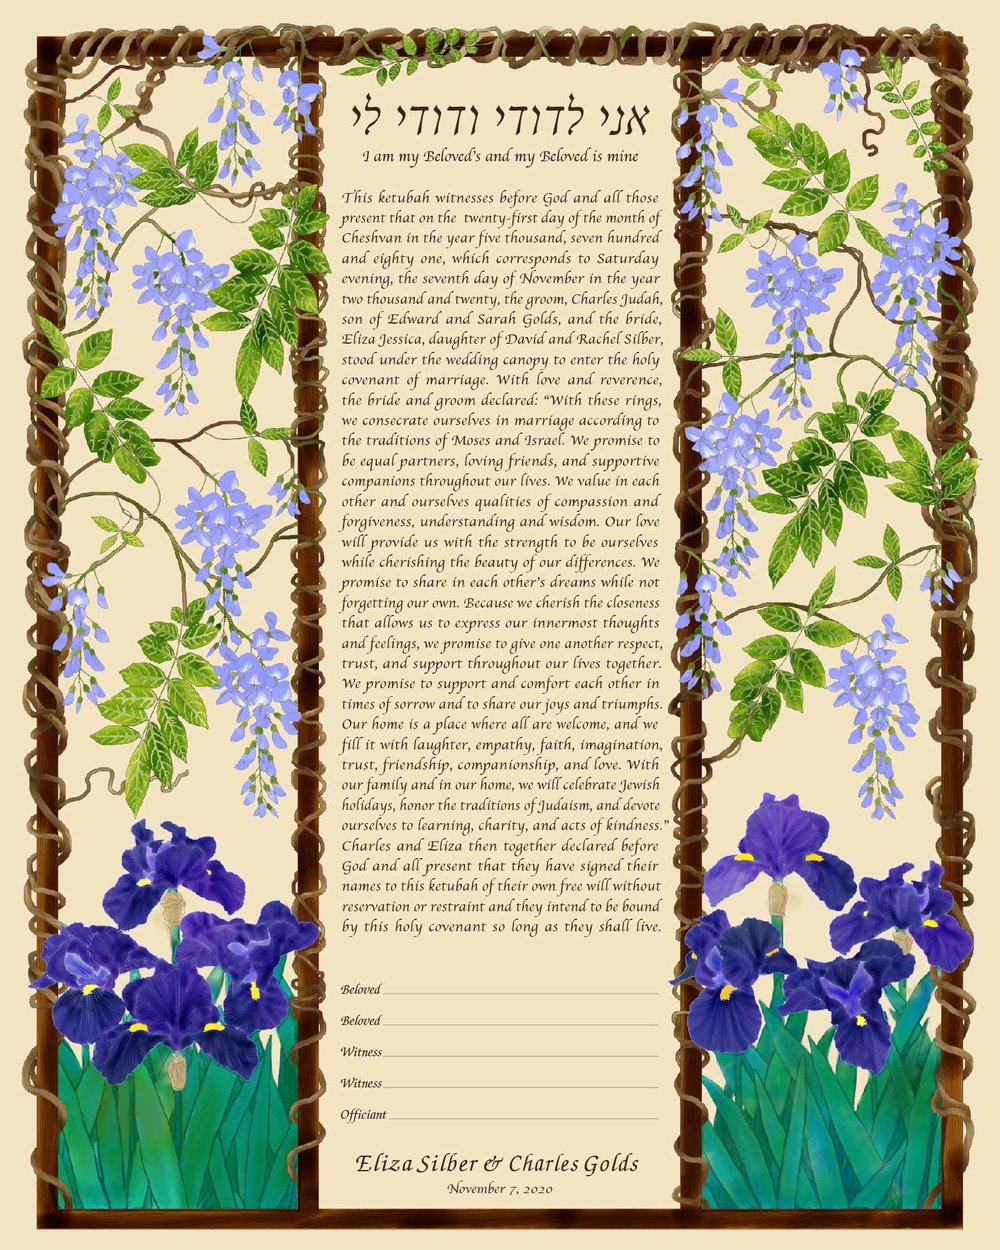 Wisteria ketubah English.jpg